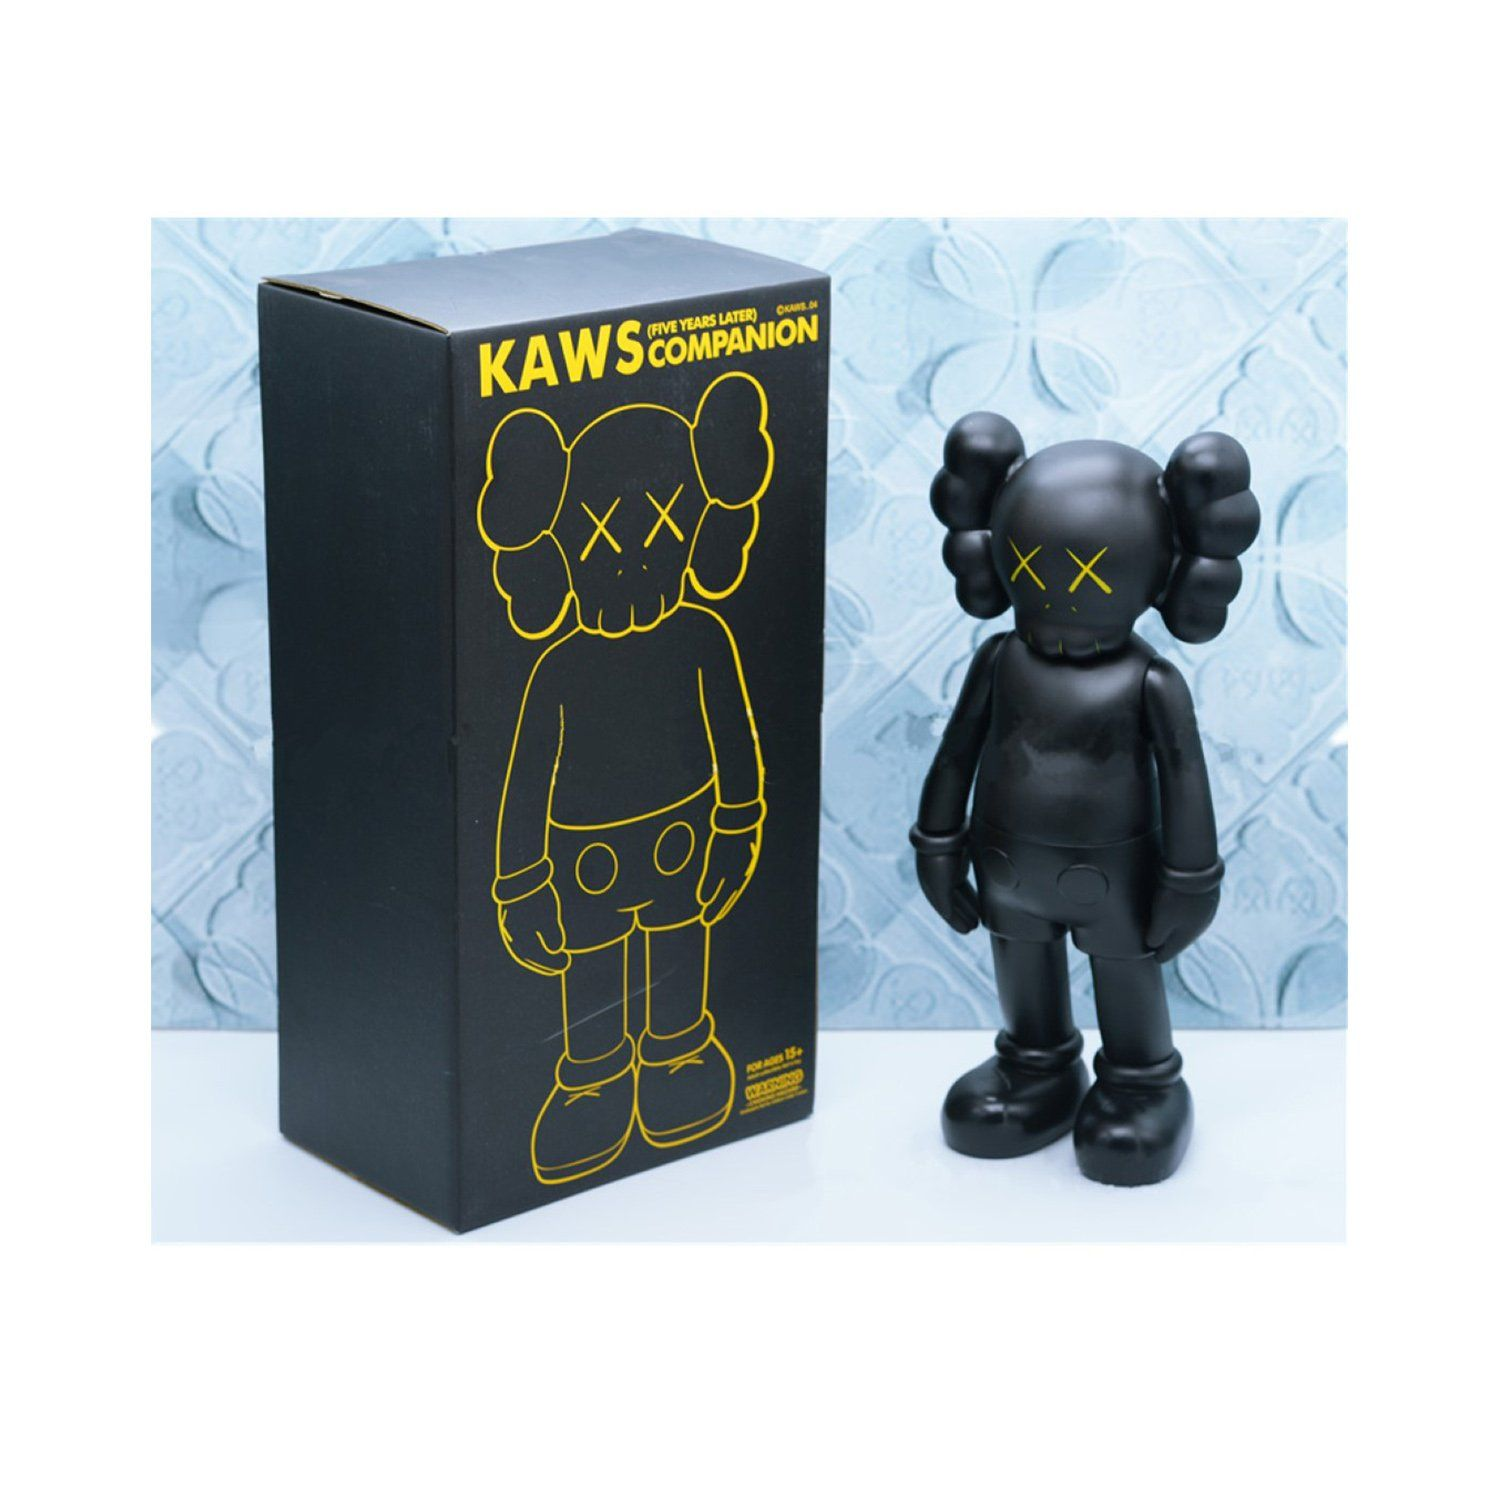 "KAWS COMPANION Flayed Open Dissected BFF 8/"" PVC Action Figures Toys New In Box"